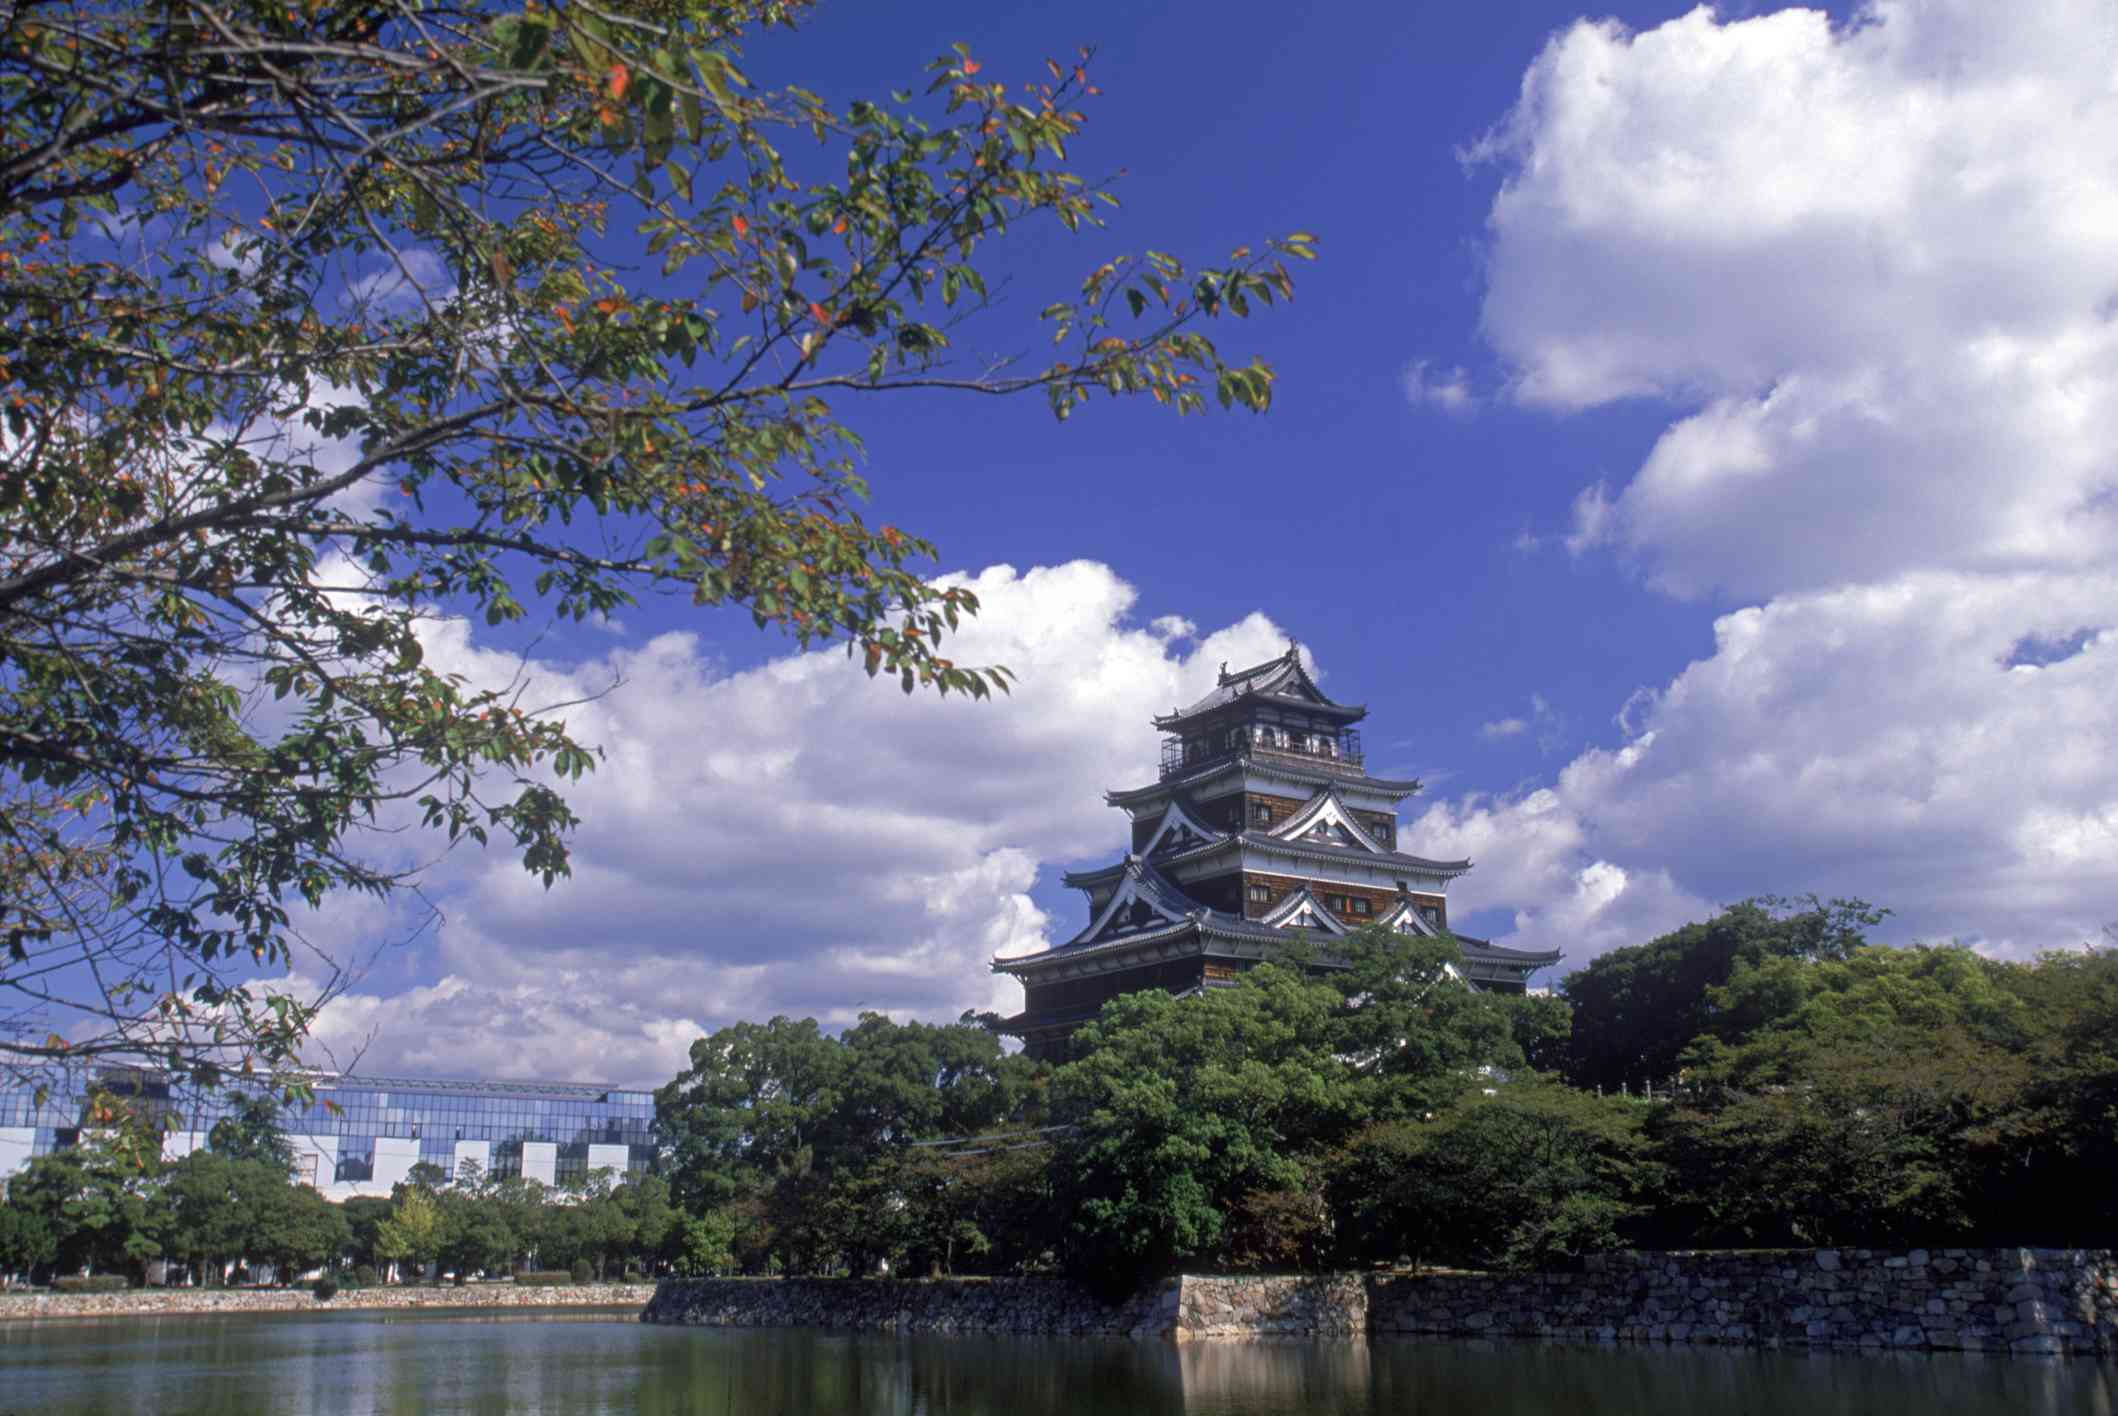 Hiroshima Castle photographed from a distance